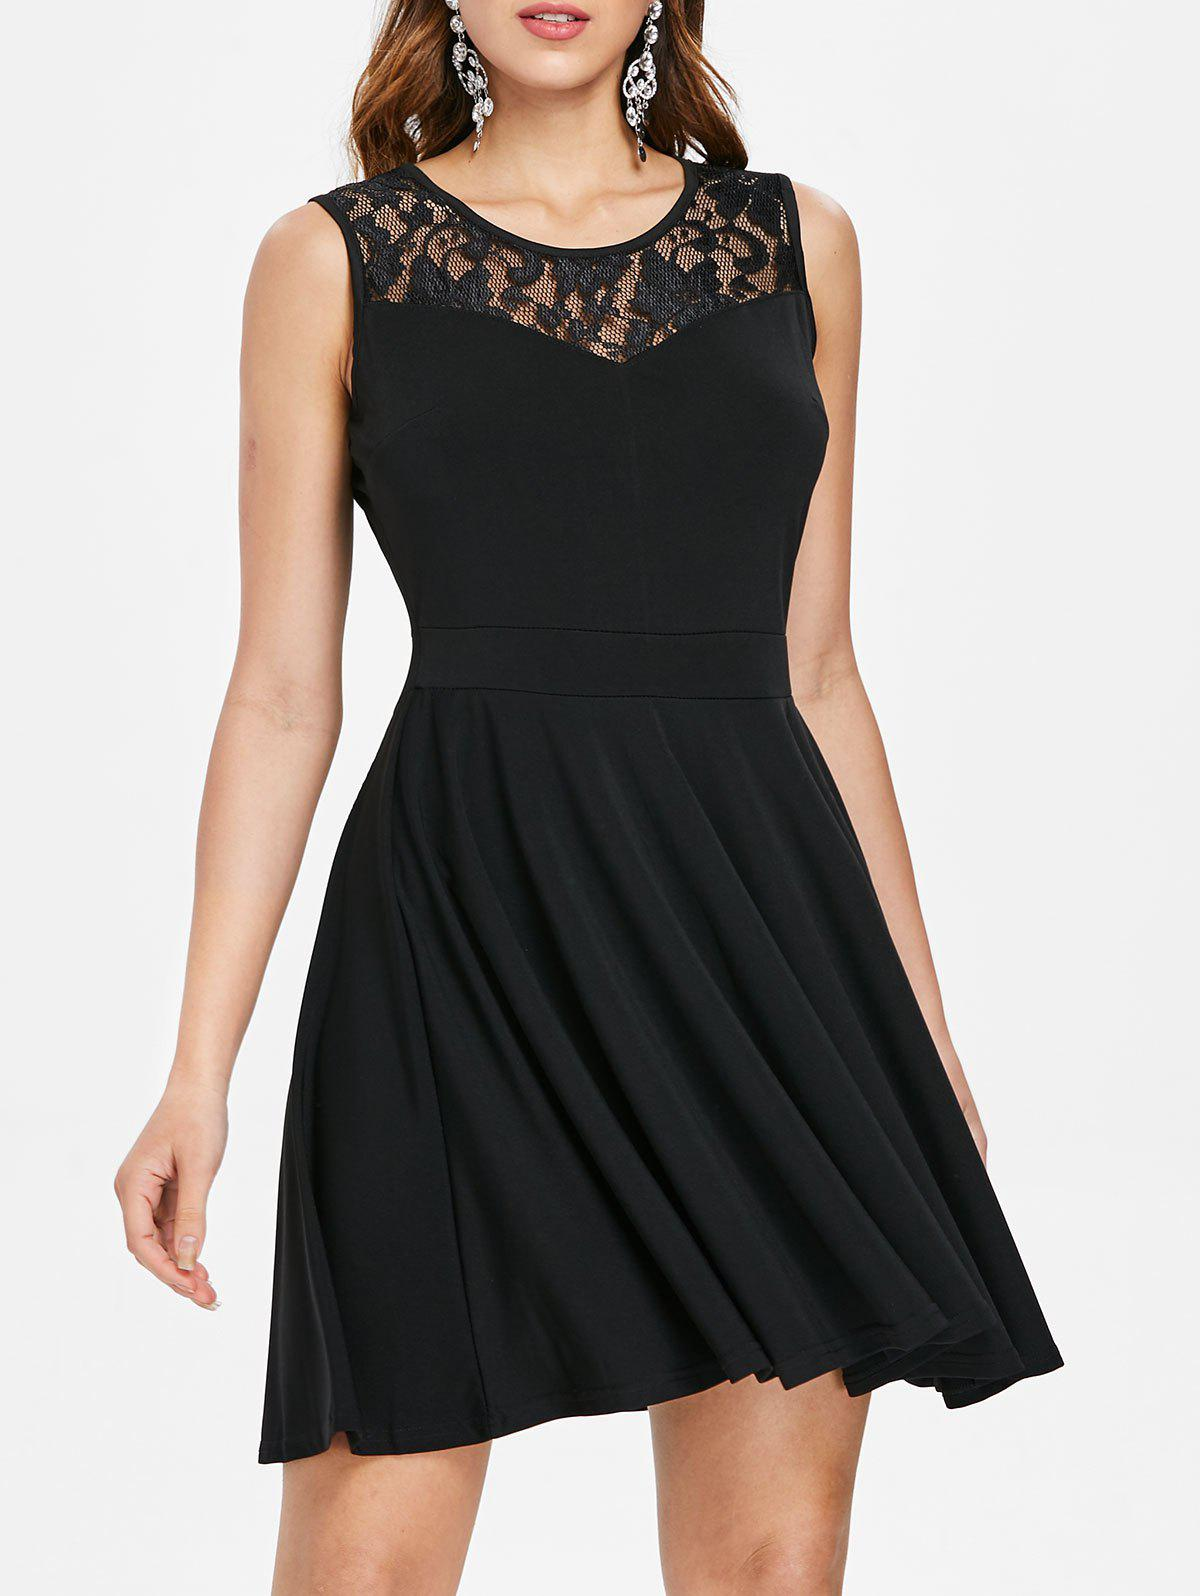 Unique Lace Insert Sleeveless Fit and Flare Dress